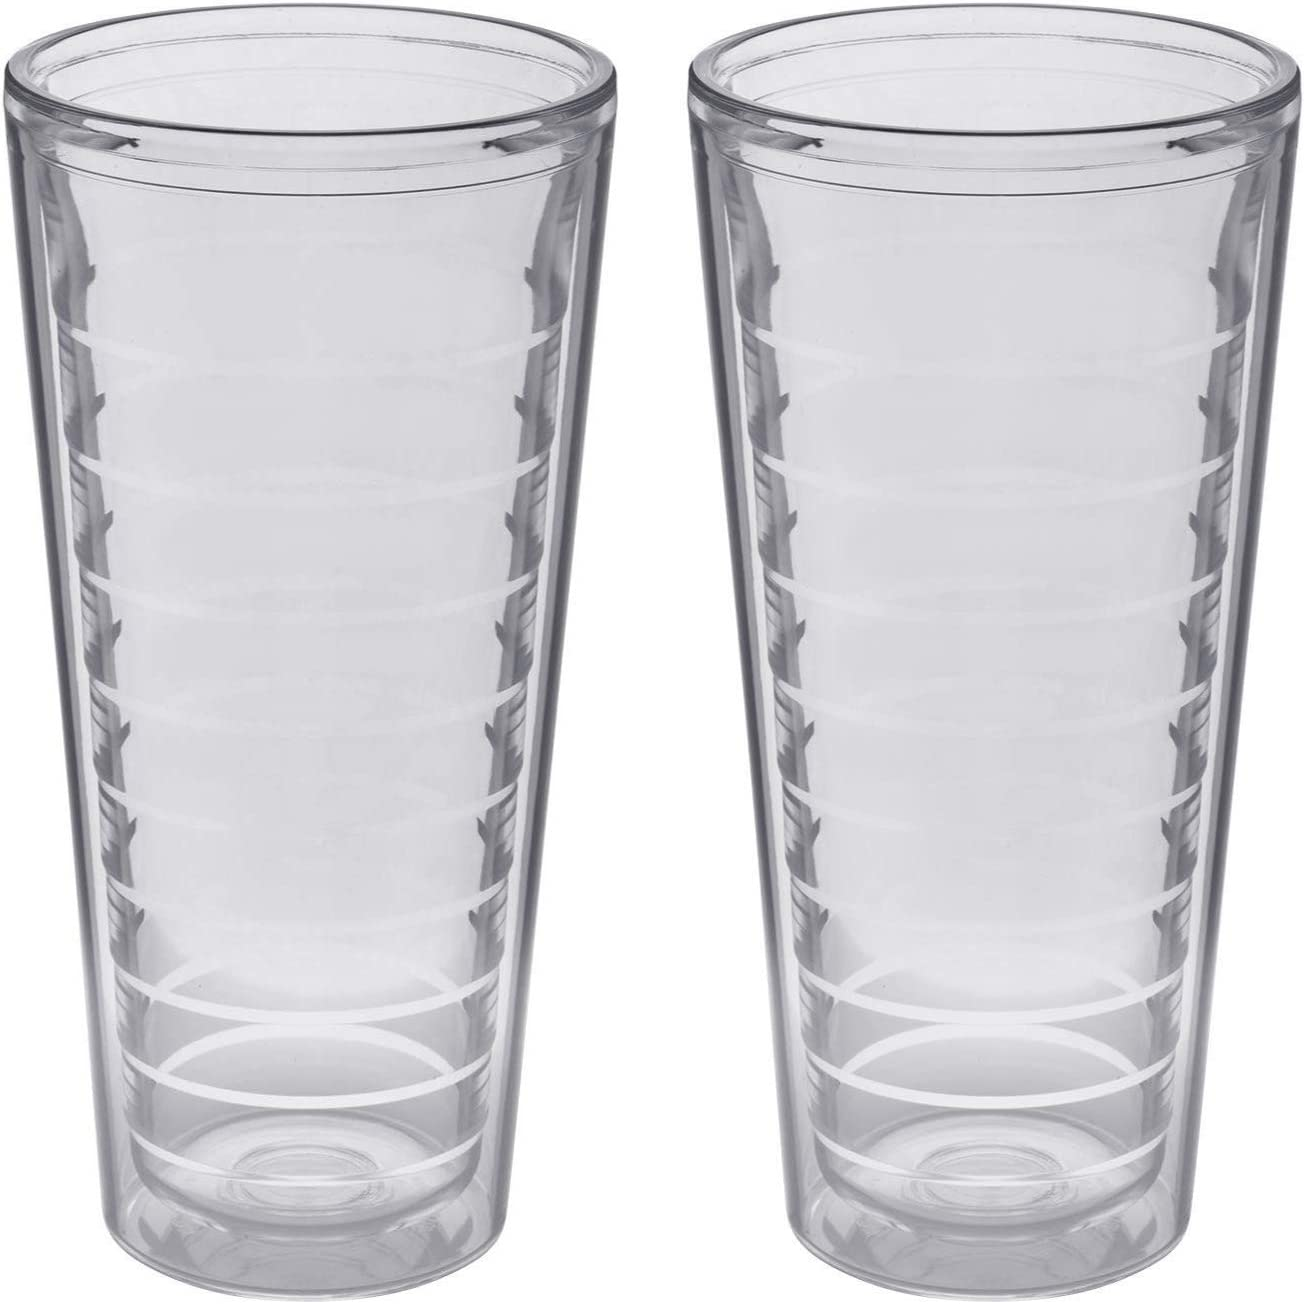 2-pack Insulated 22 Ounce Tumblers - Drinking Glasses Made in USA - Clear (22oz Insulated Glasses)